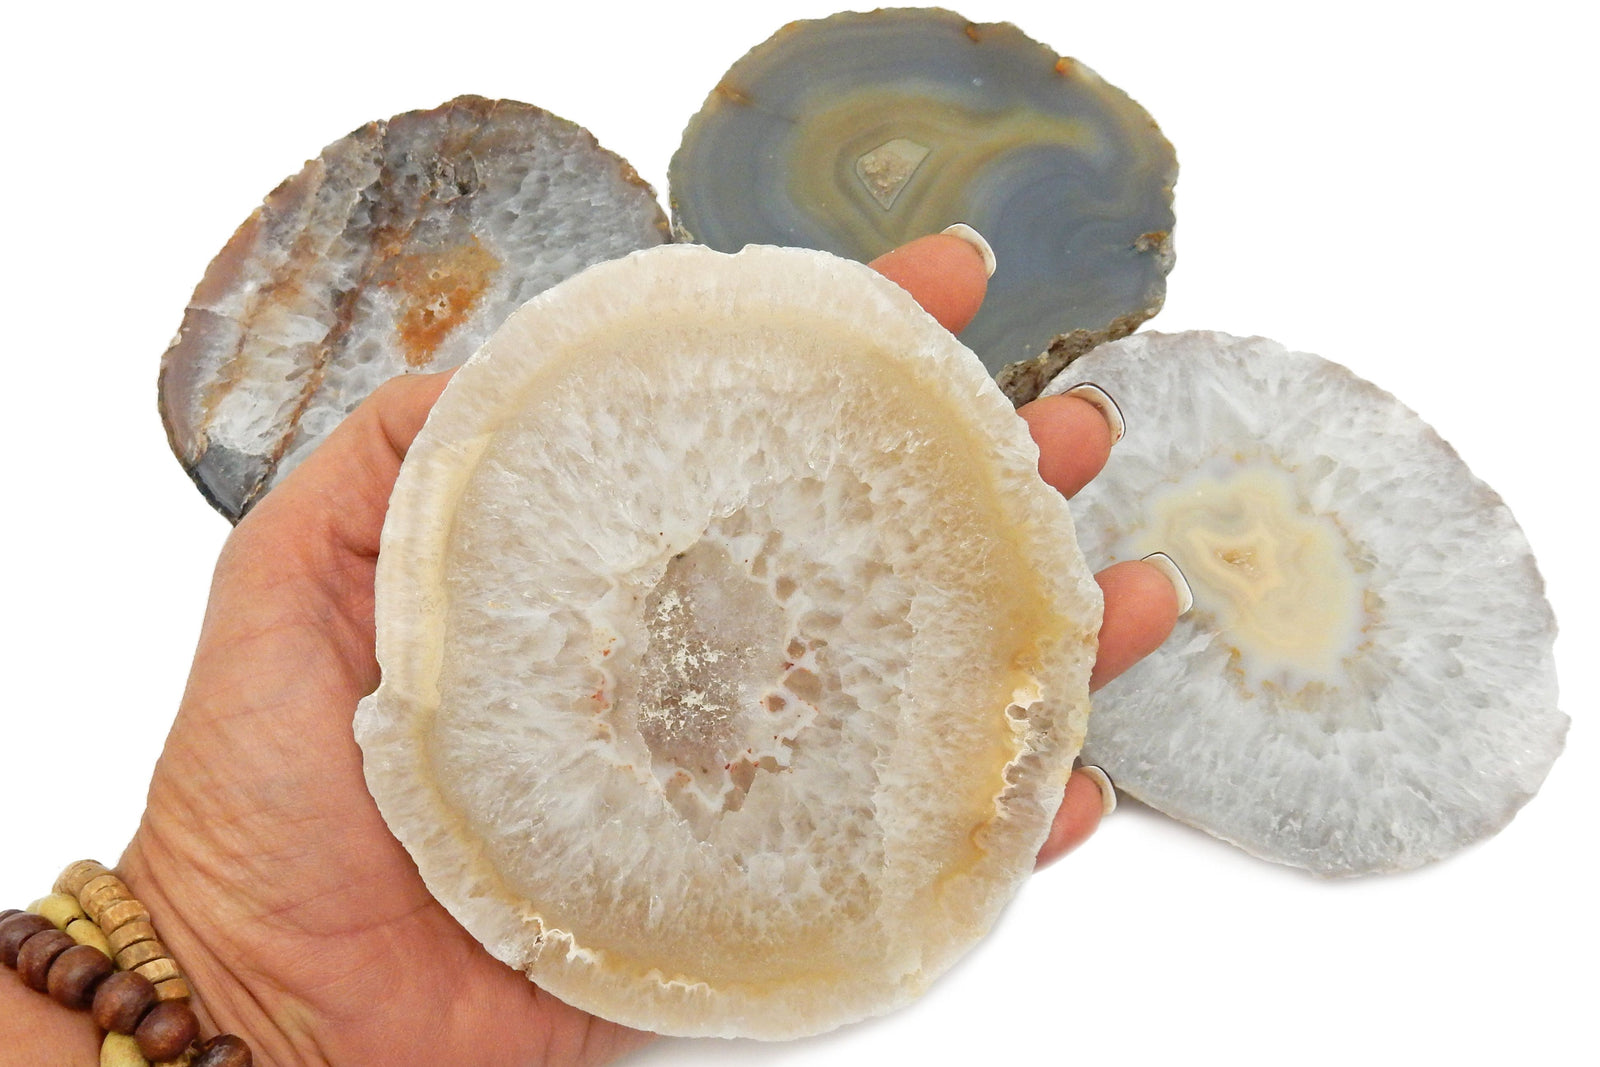 Coasters - Thick Agate Slice Slabs - Coaster Size - Agate Coaster Natural (RK80-Natural)